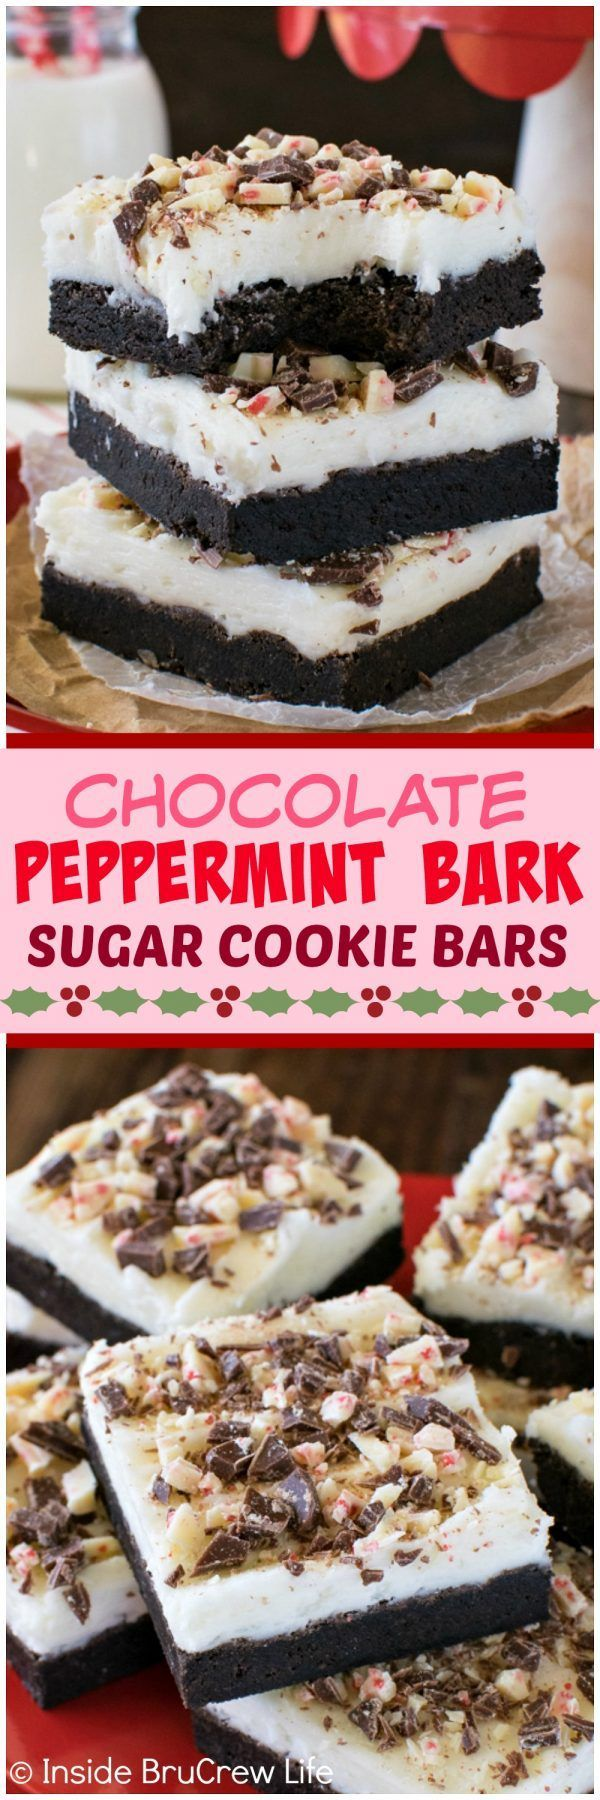 Chocolate Peppermint Bark Sugar Cookie Bars - these easy cookie bars are made and frosted in one pan. Peppermint frosting & candy bars make these the best recipe for Christmas parties!